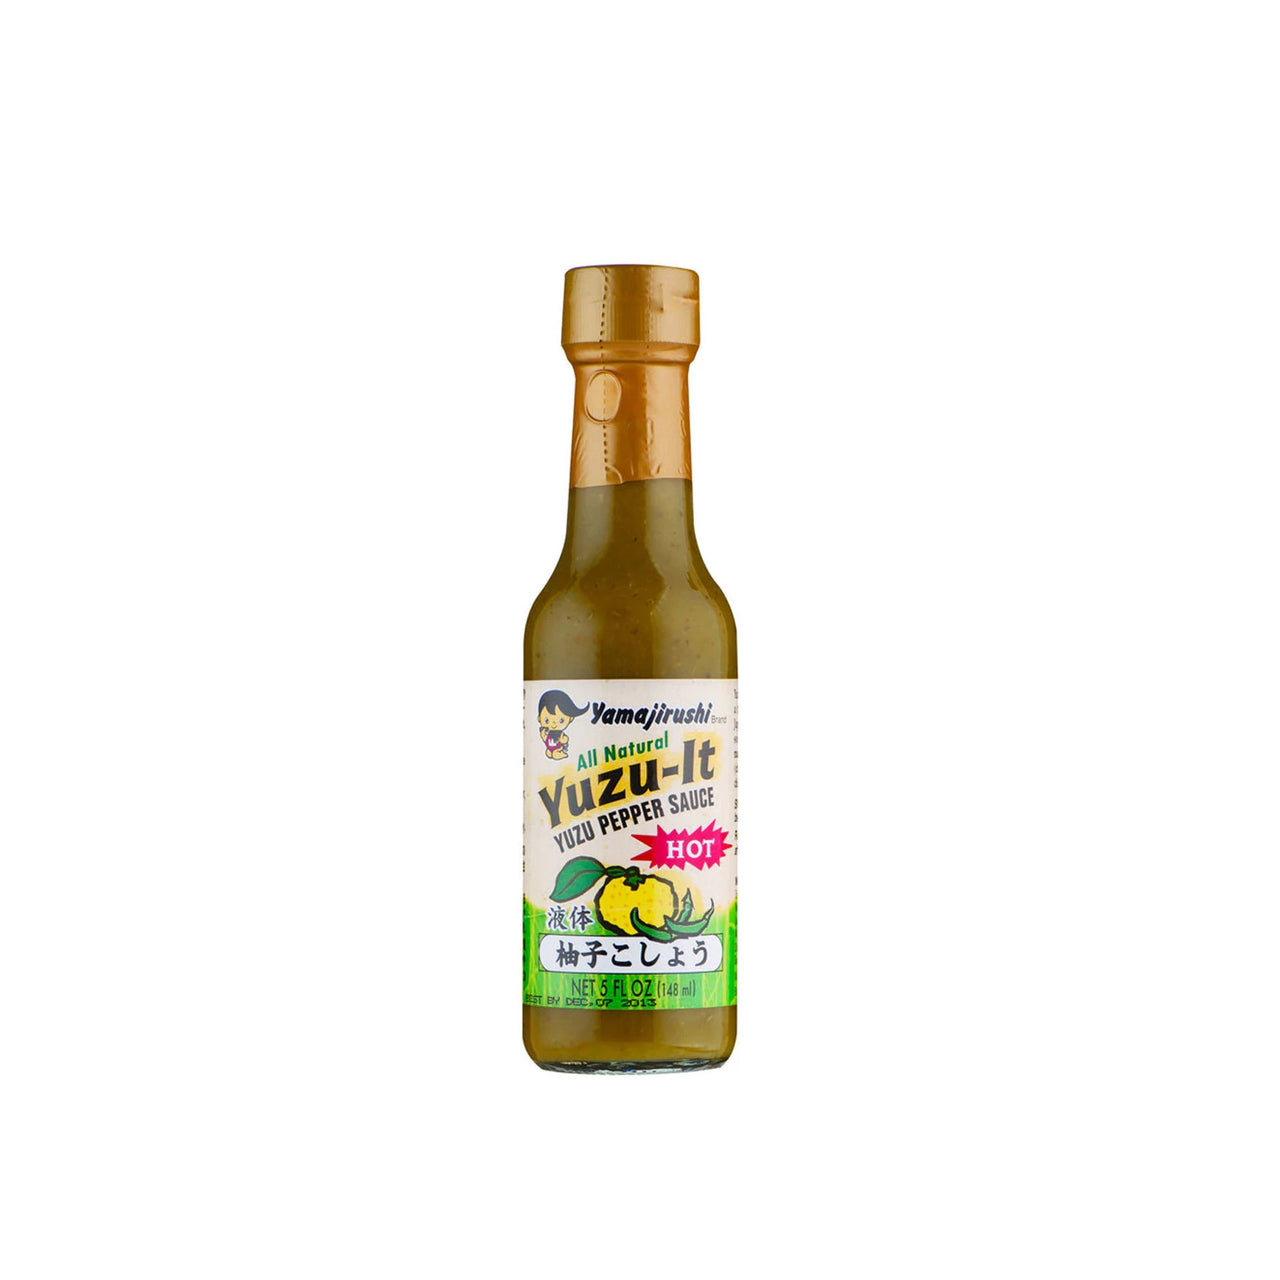 Yamajirushi Yuzu-It Citrus Chili Sauce - 5floz (148ml) (SKU: 30266)